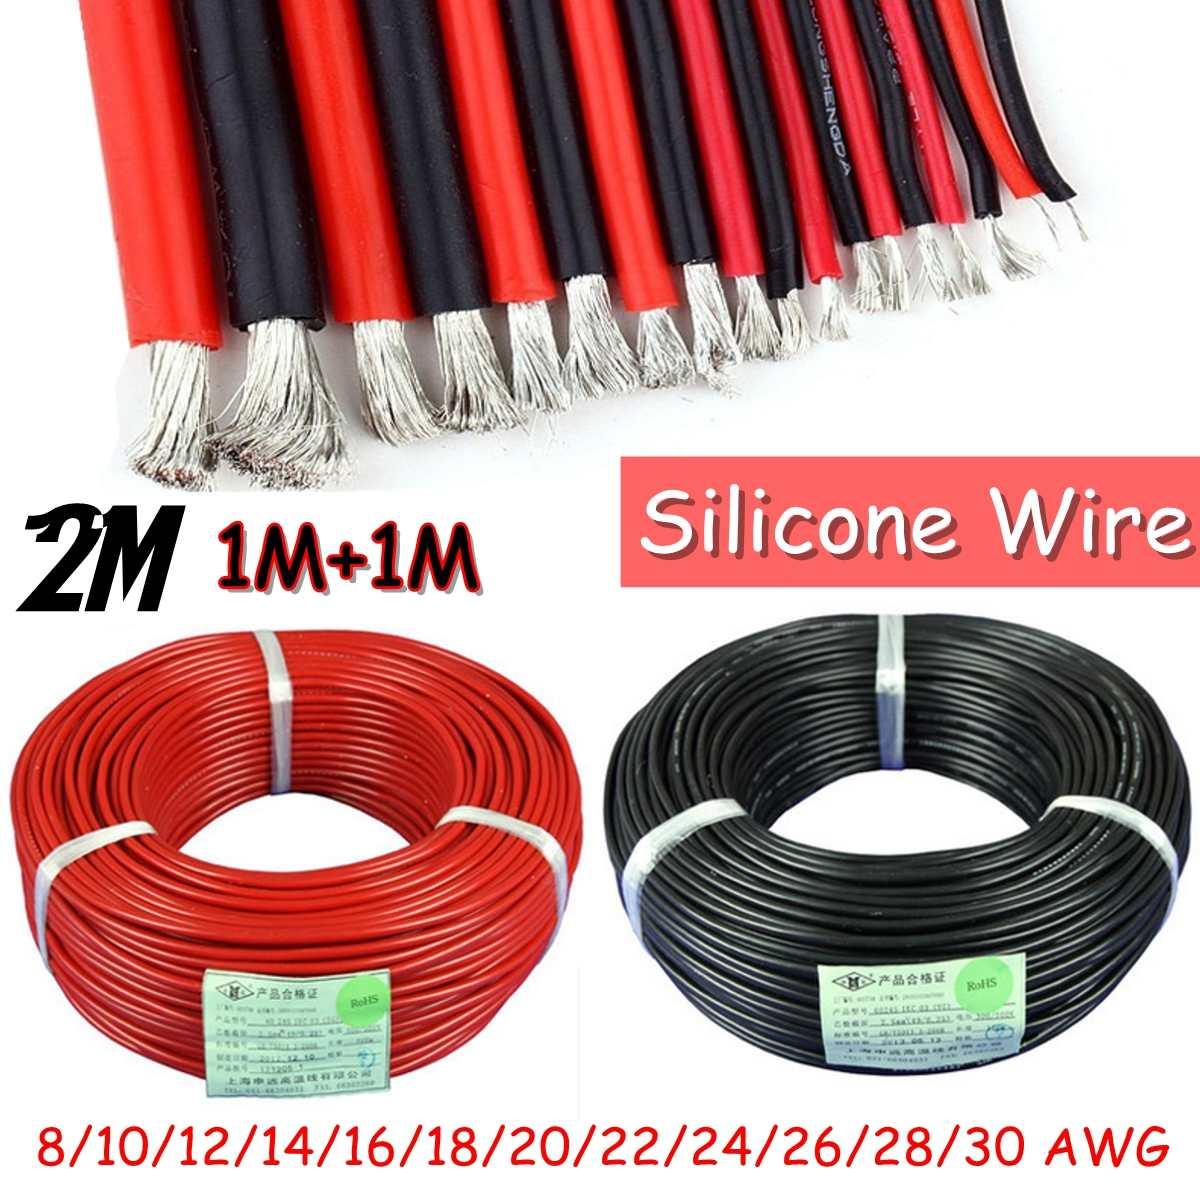 1M Silicone Wire 8/10/12/14/16/18/20/22/24/26 AWG Black Red Heatproof Soft Silicone Silica Gel Cable SR Wire Flexible Stranded